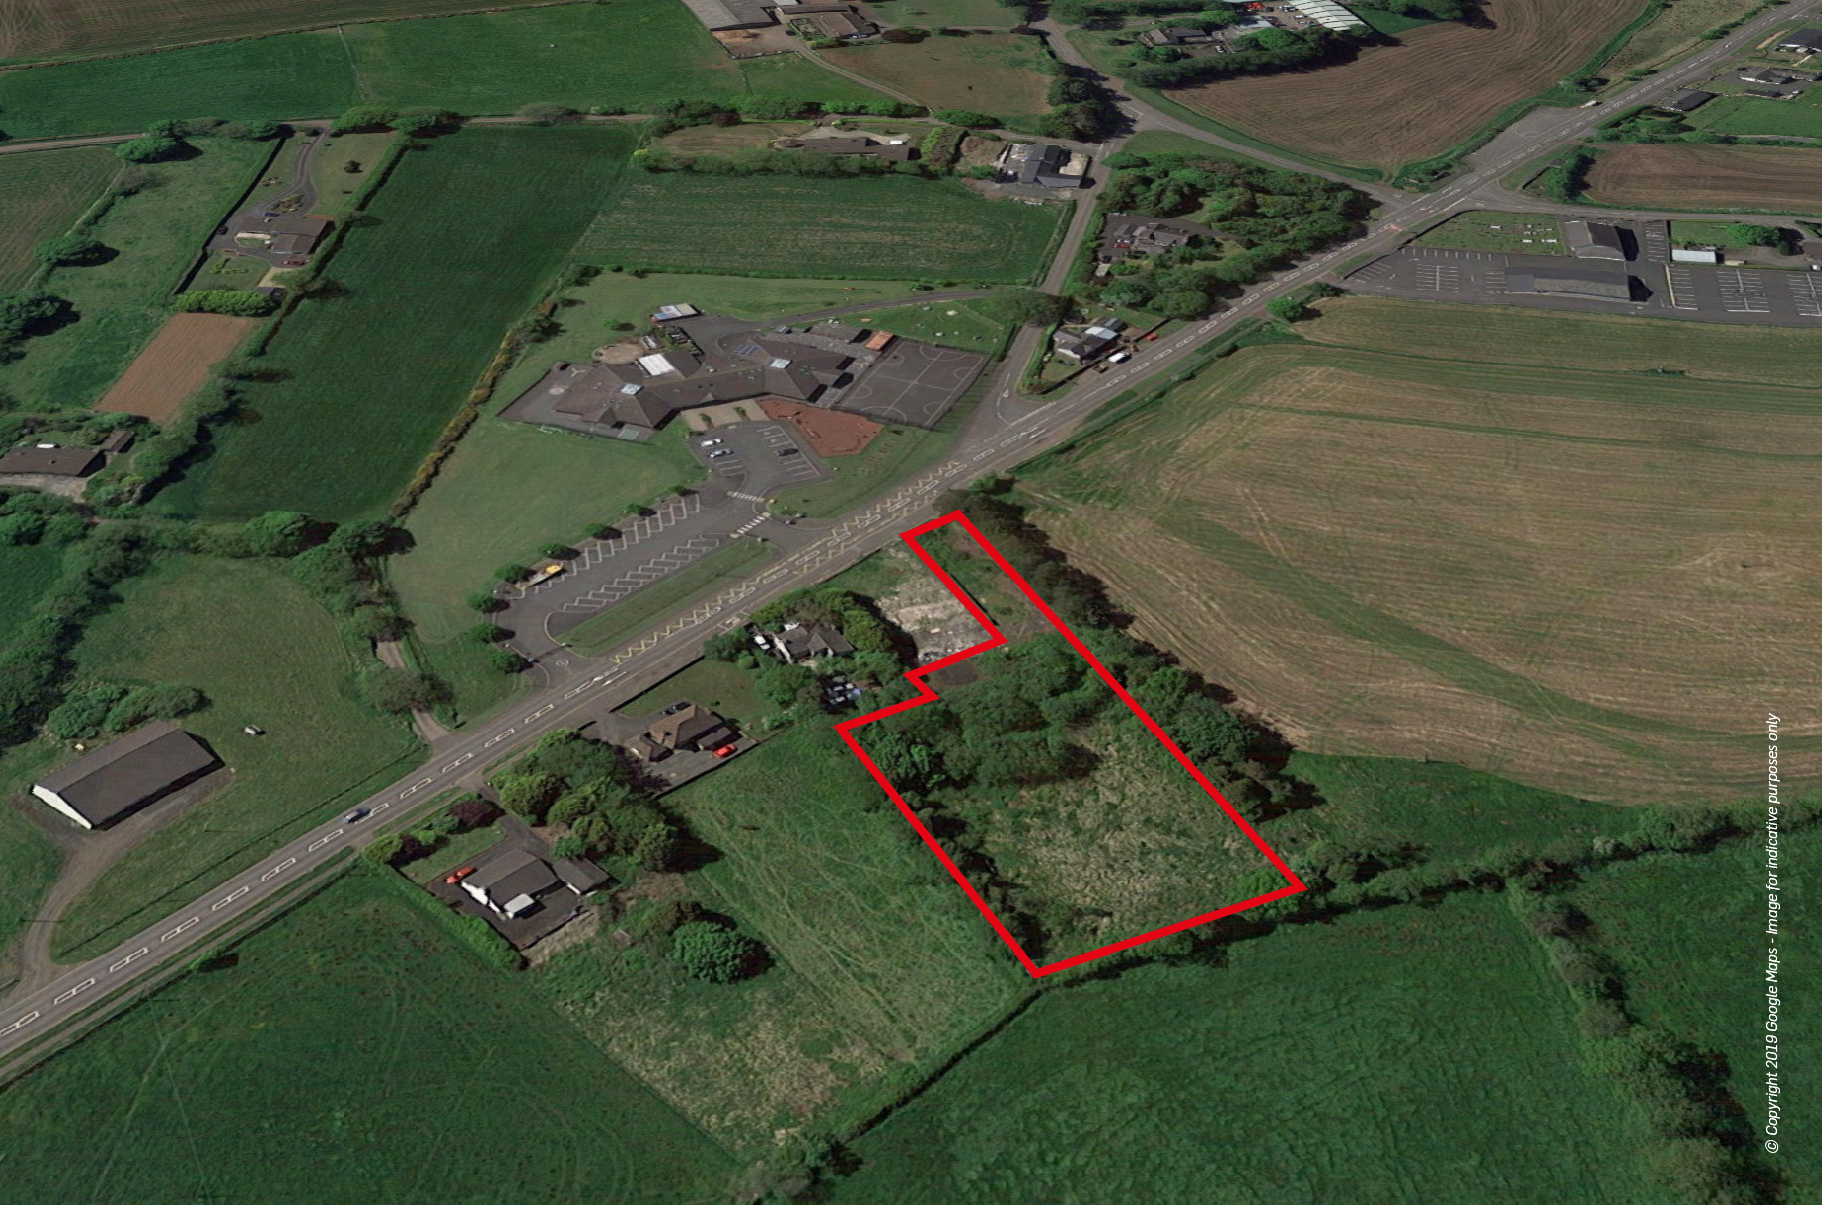 Land at 192 Seven Mile Straight, Crumlin, Co. Antrim, BT29 4YR photo